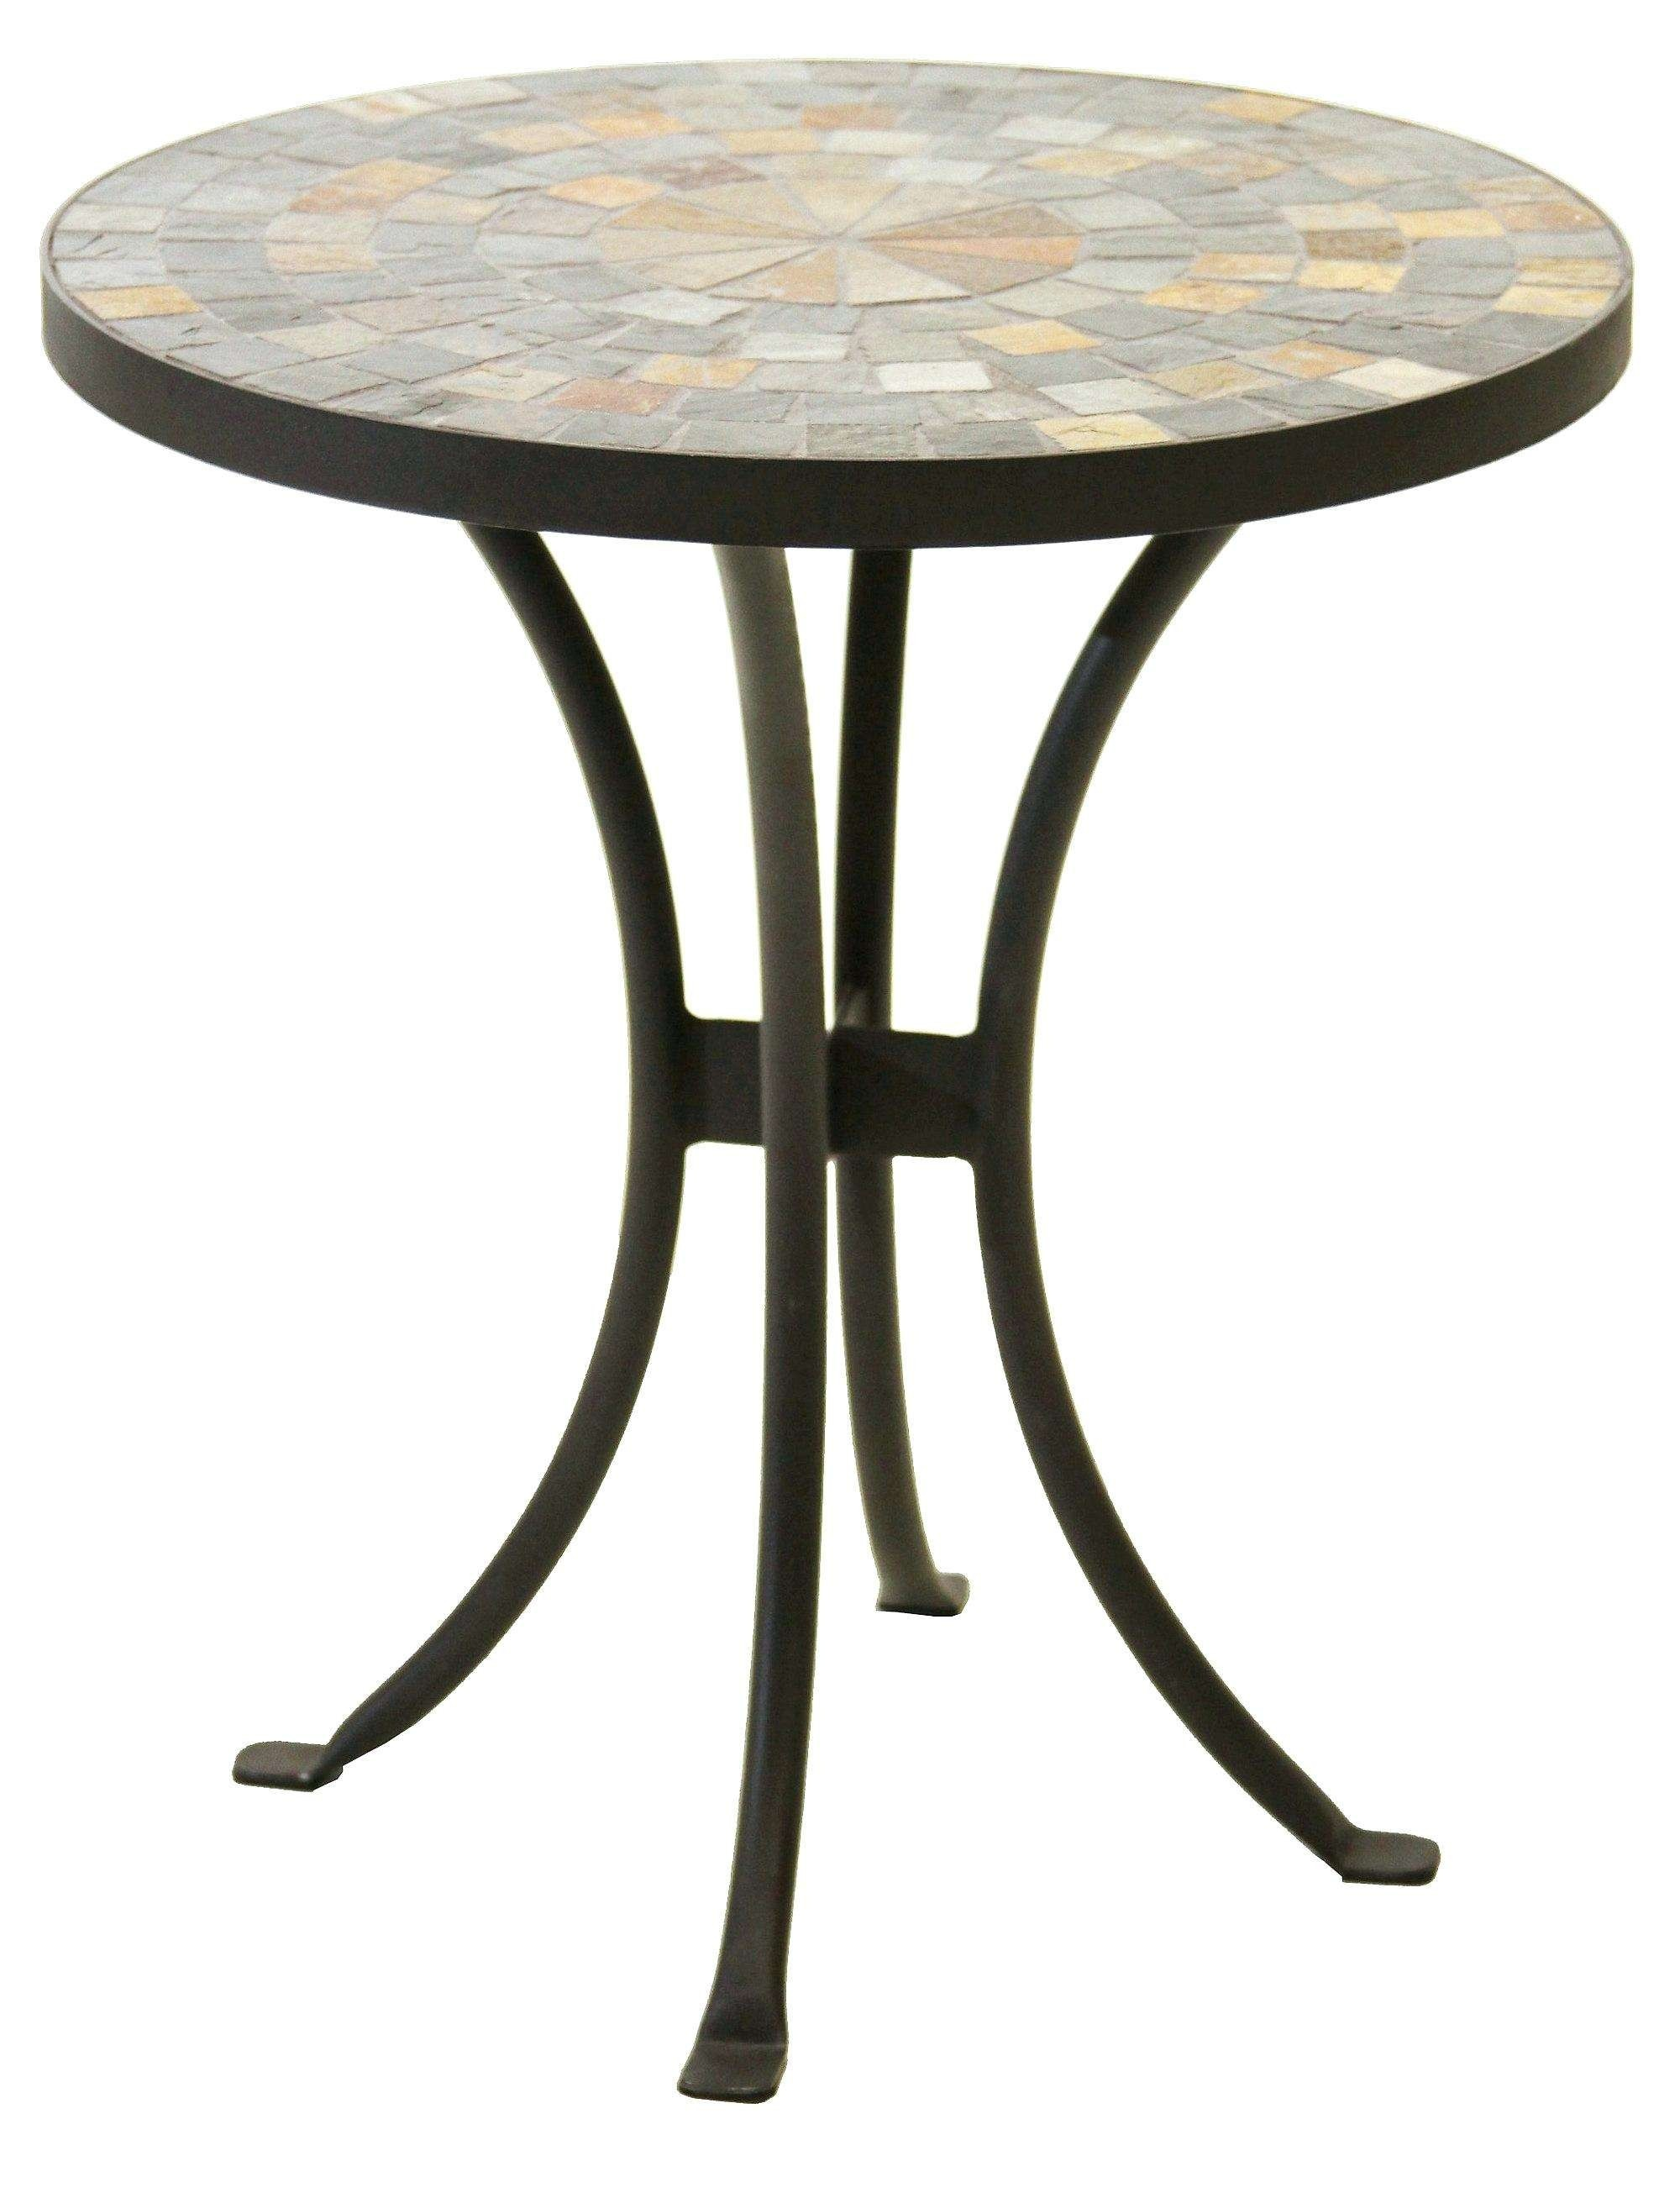 mosaic tile outdoor table unique stone top coffee fresh accent stock side contemporary wood rattan drinks simple plans large floor mirror square patio retro designer furniture